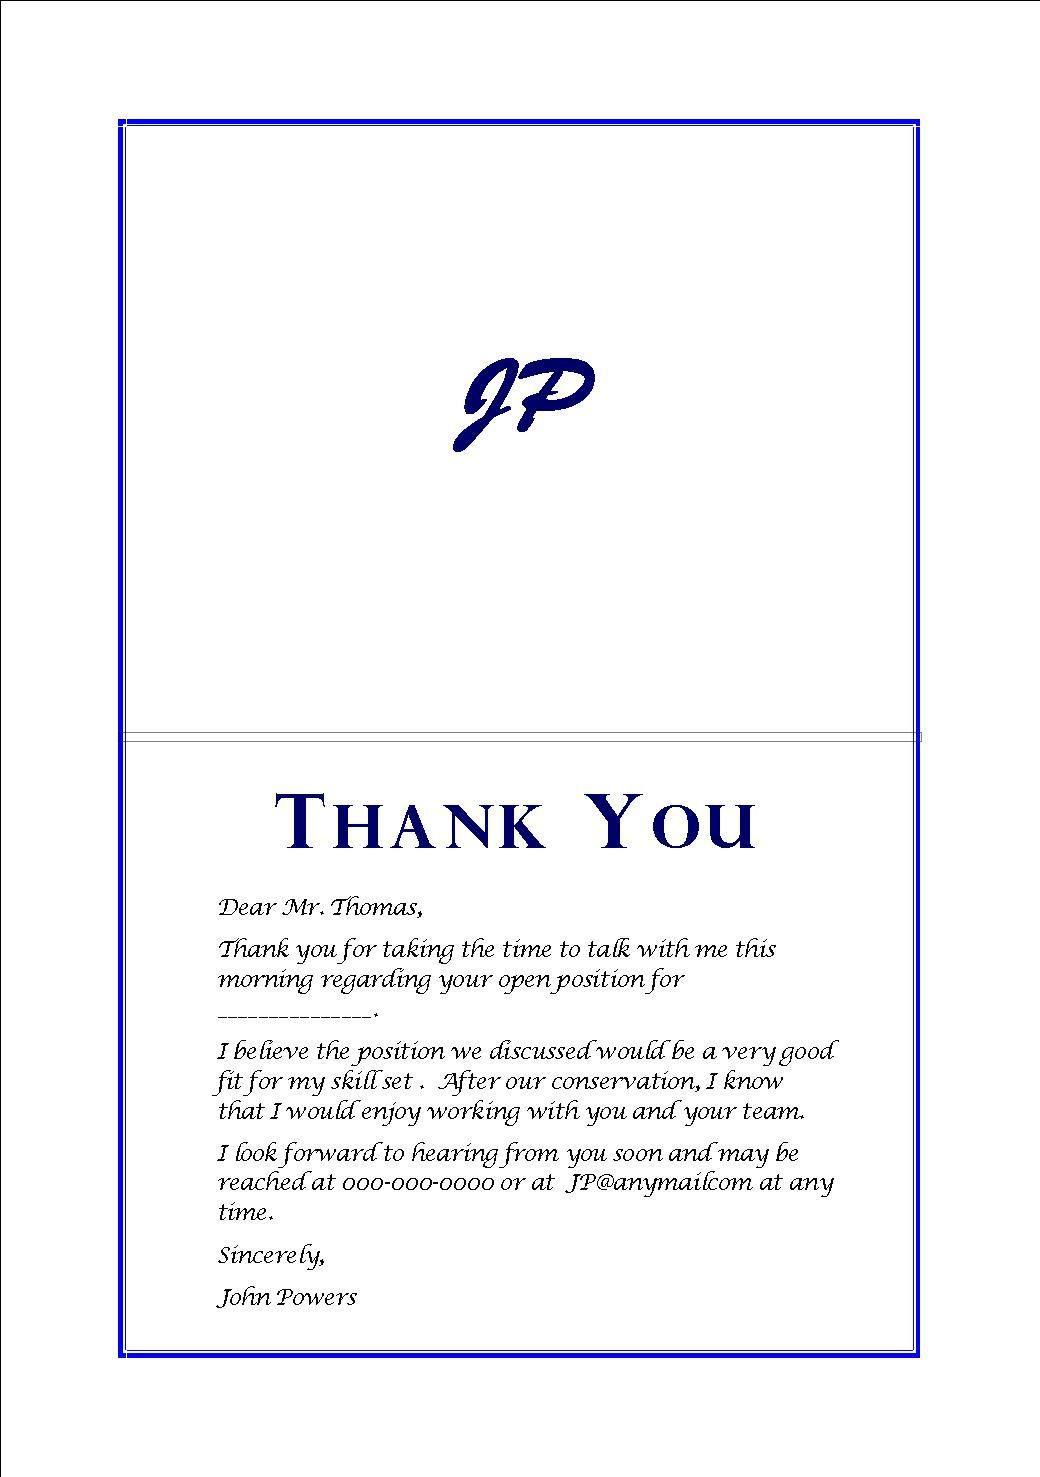 001 Striking Thank You Note After Interview Format Sample  Card For Template Handwritten Example Letter QuestionFull